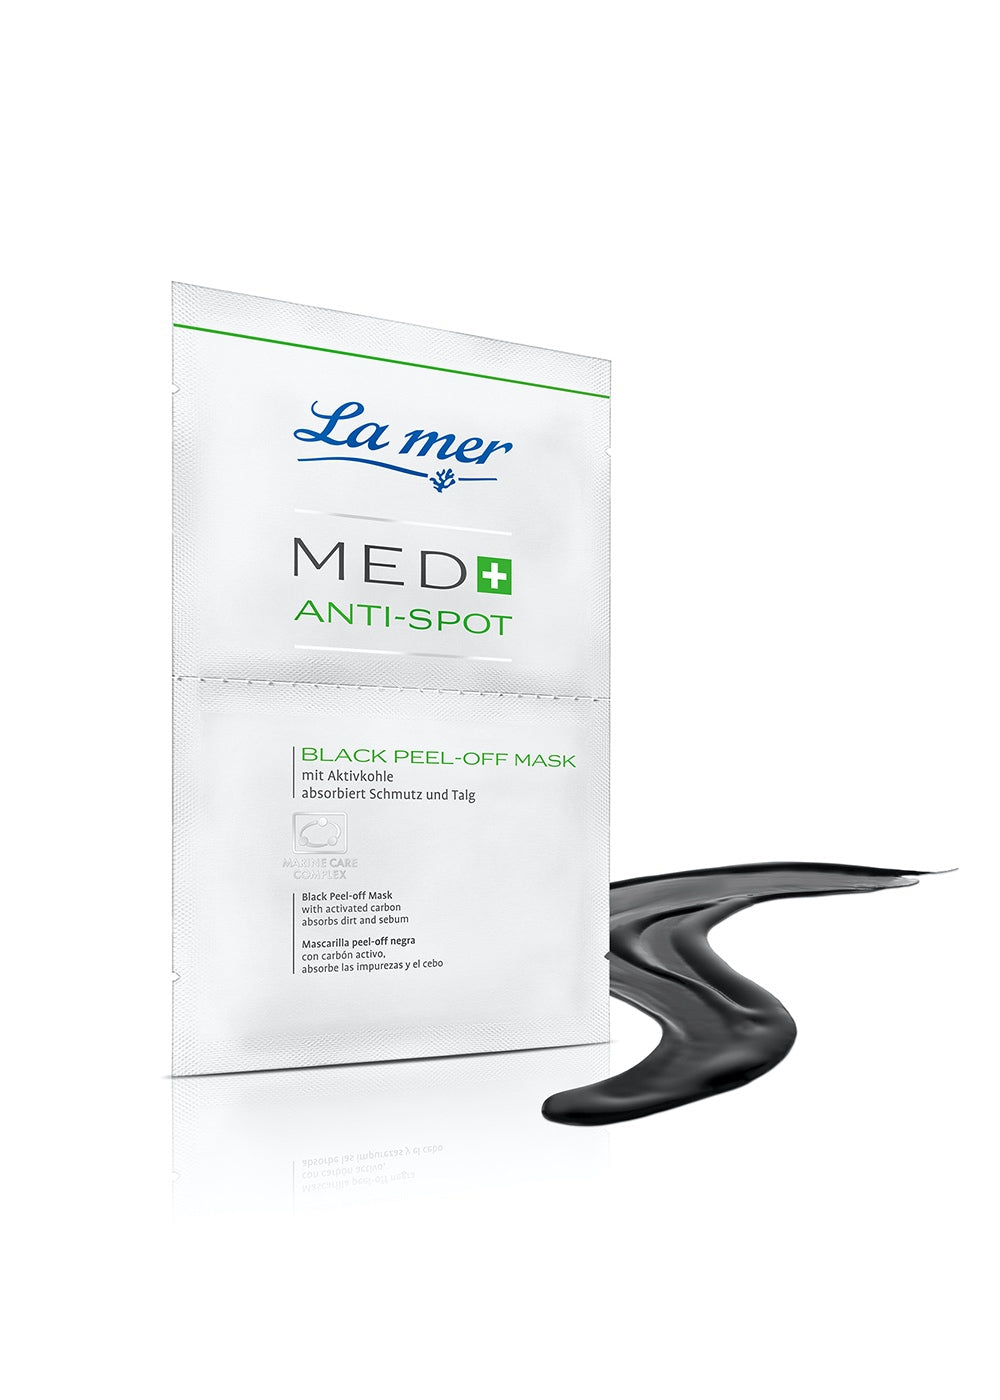 La mer MED+ Anti-Spot Black Peel-Off Mask